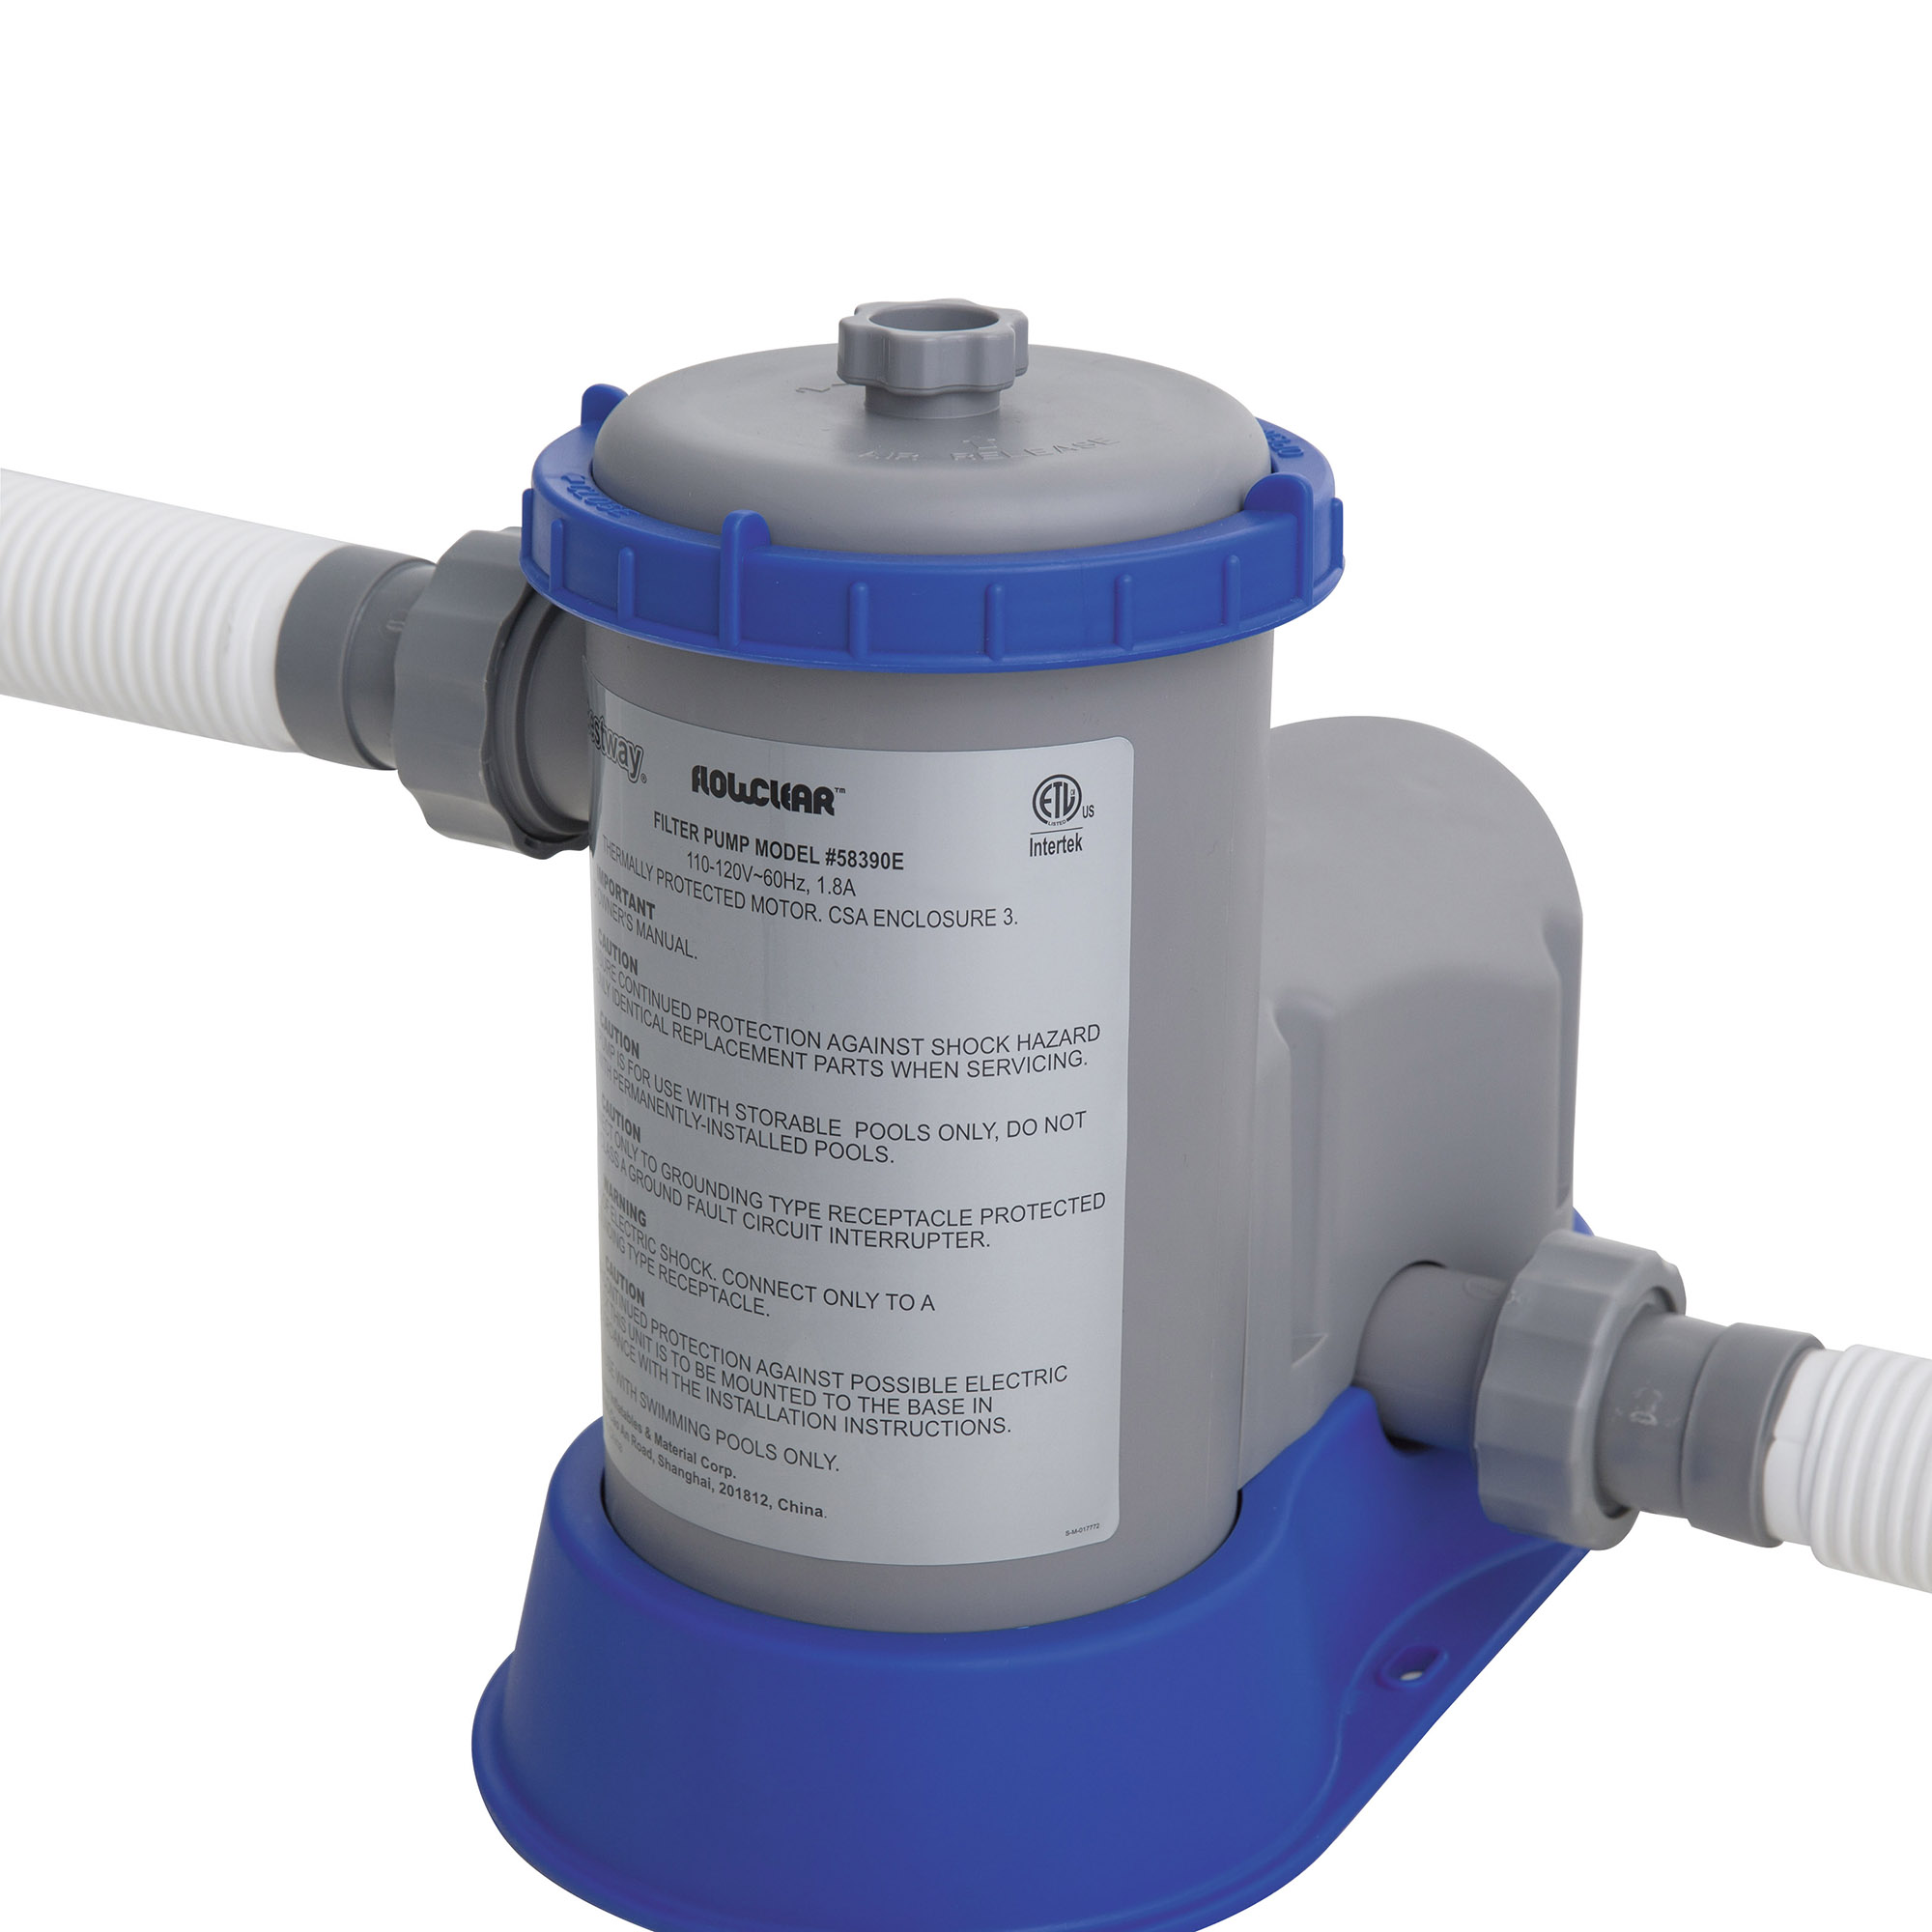 Bestway Flow Clear 1500 Gph Above Ground Swimming Pool Filter Pump 58390e Ebay